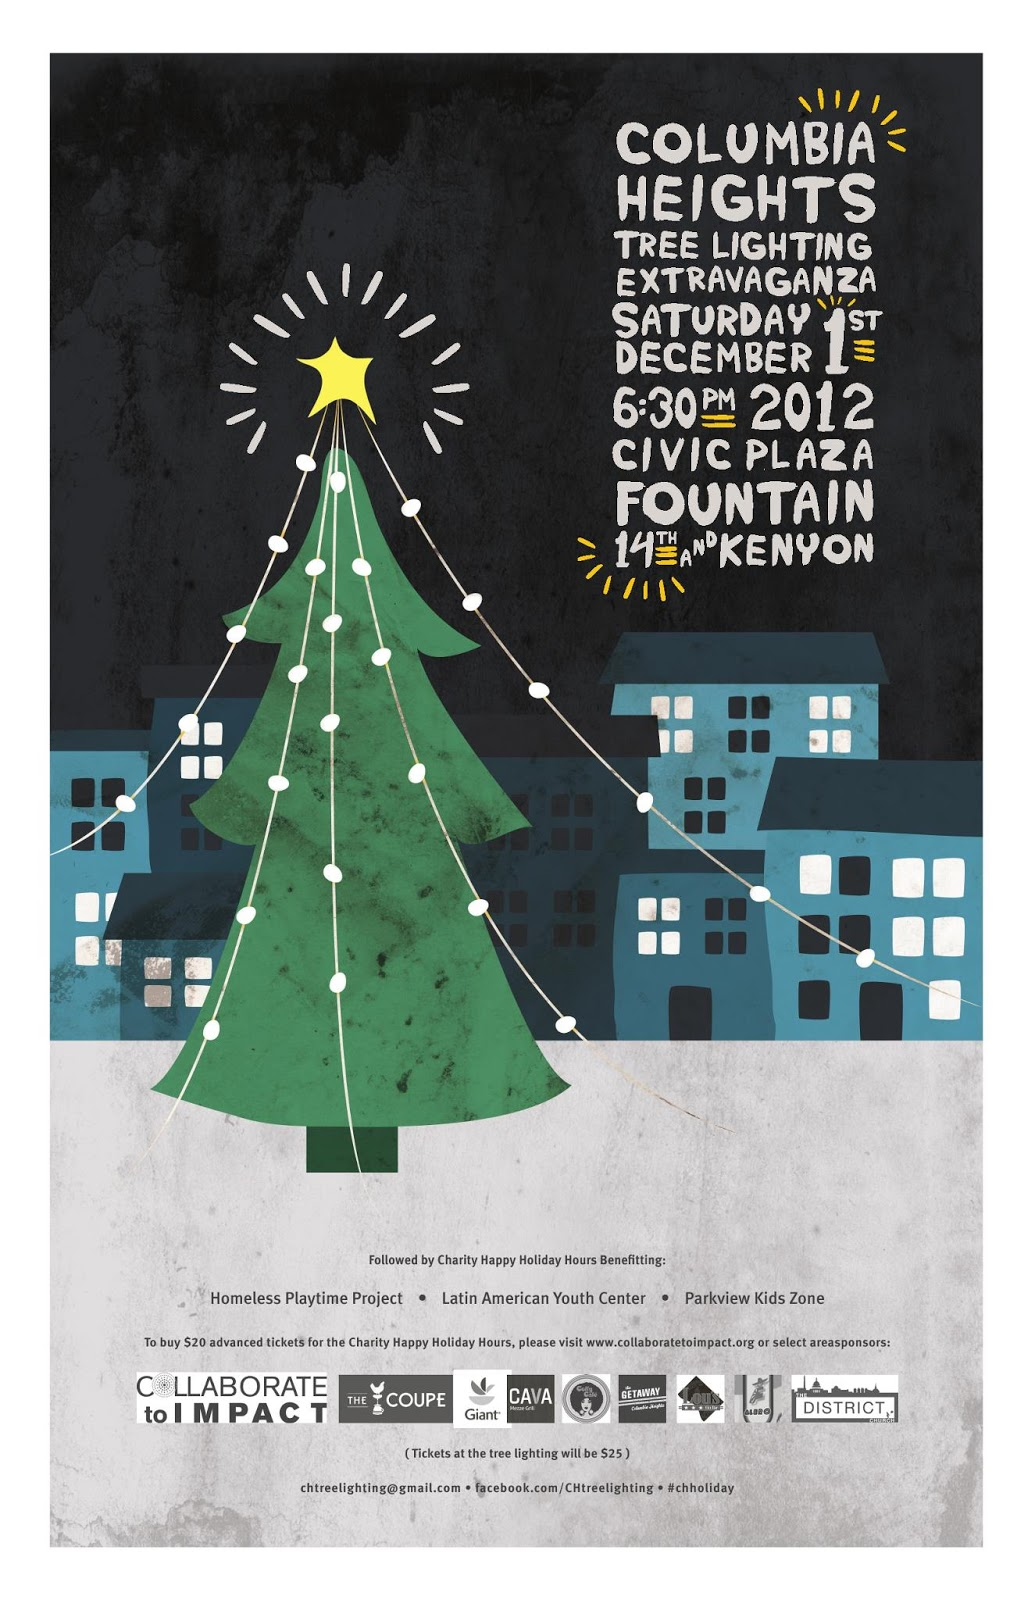 columbia heights christmas tree lighting dec 1 plus charity happy hour after - Giant Christmas Hours